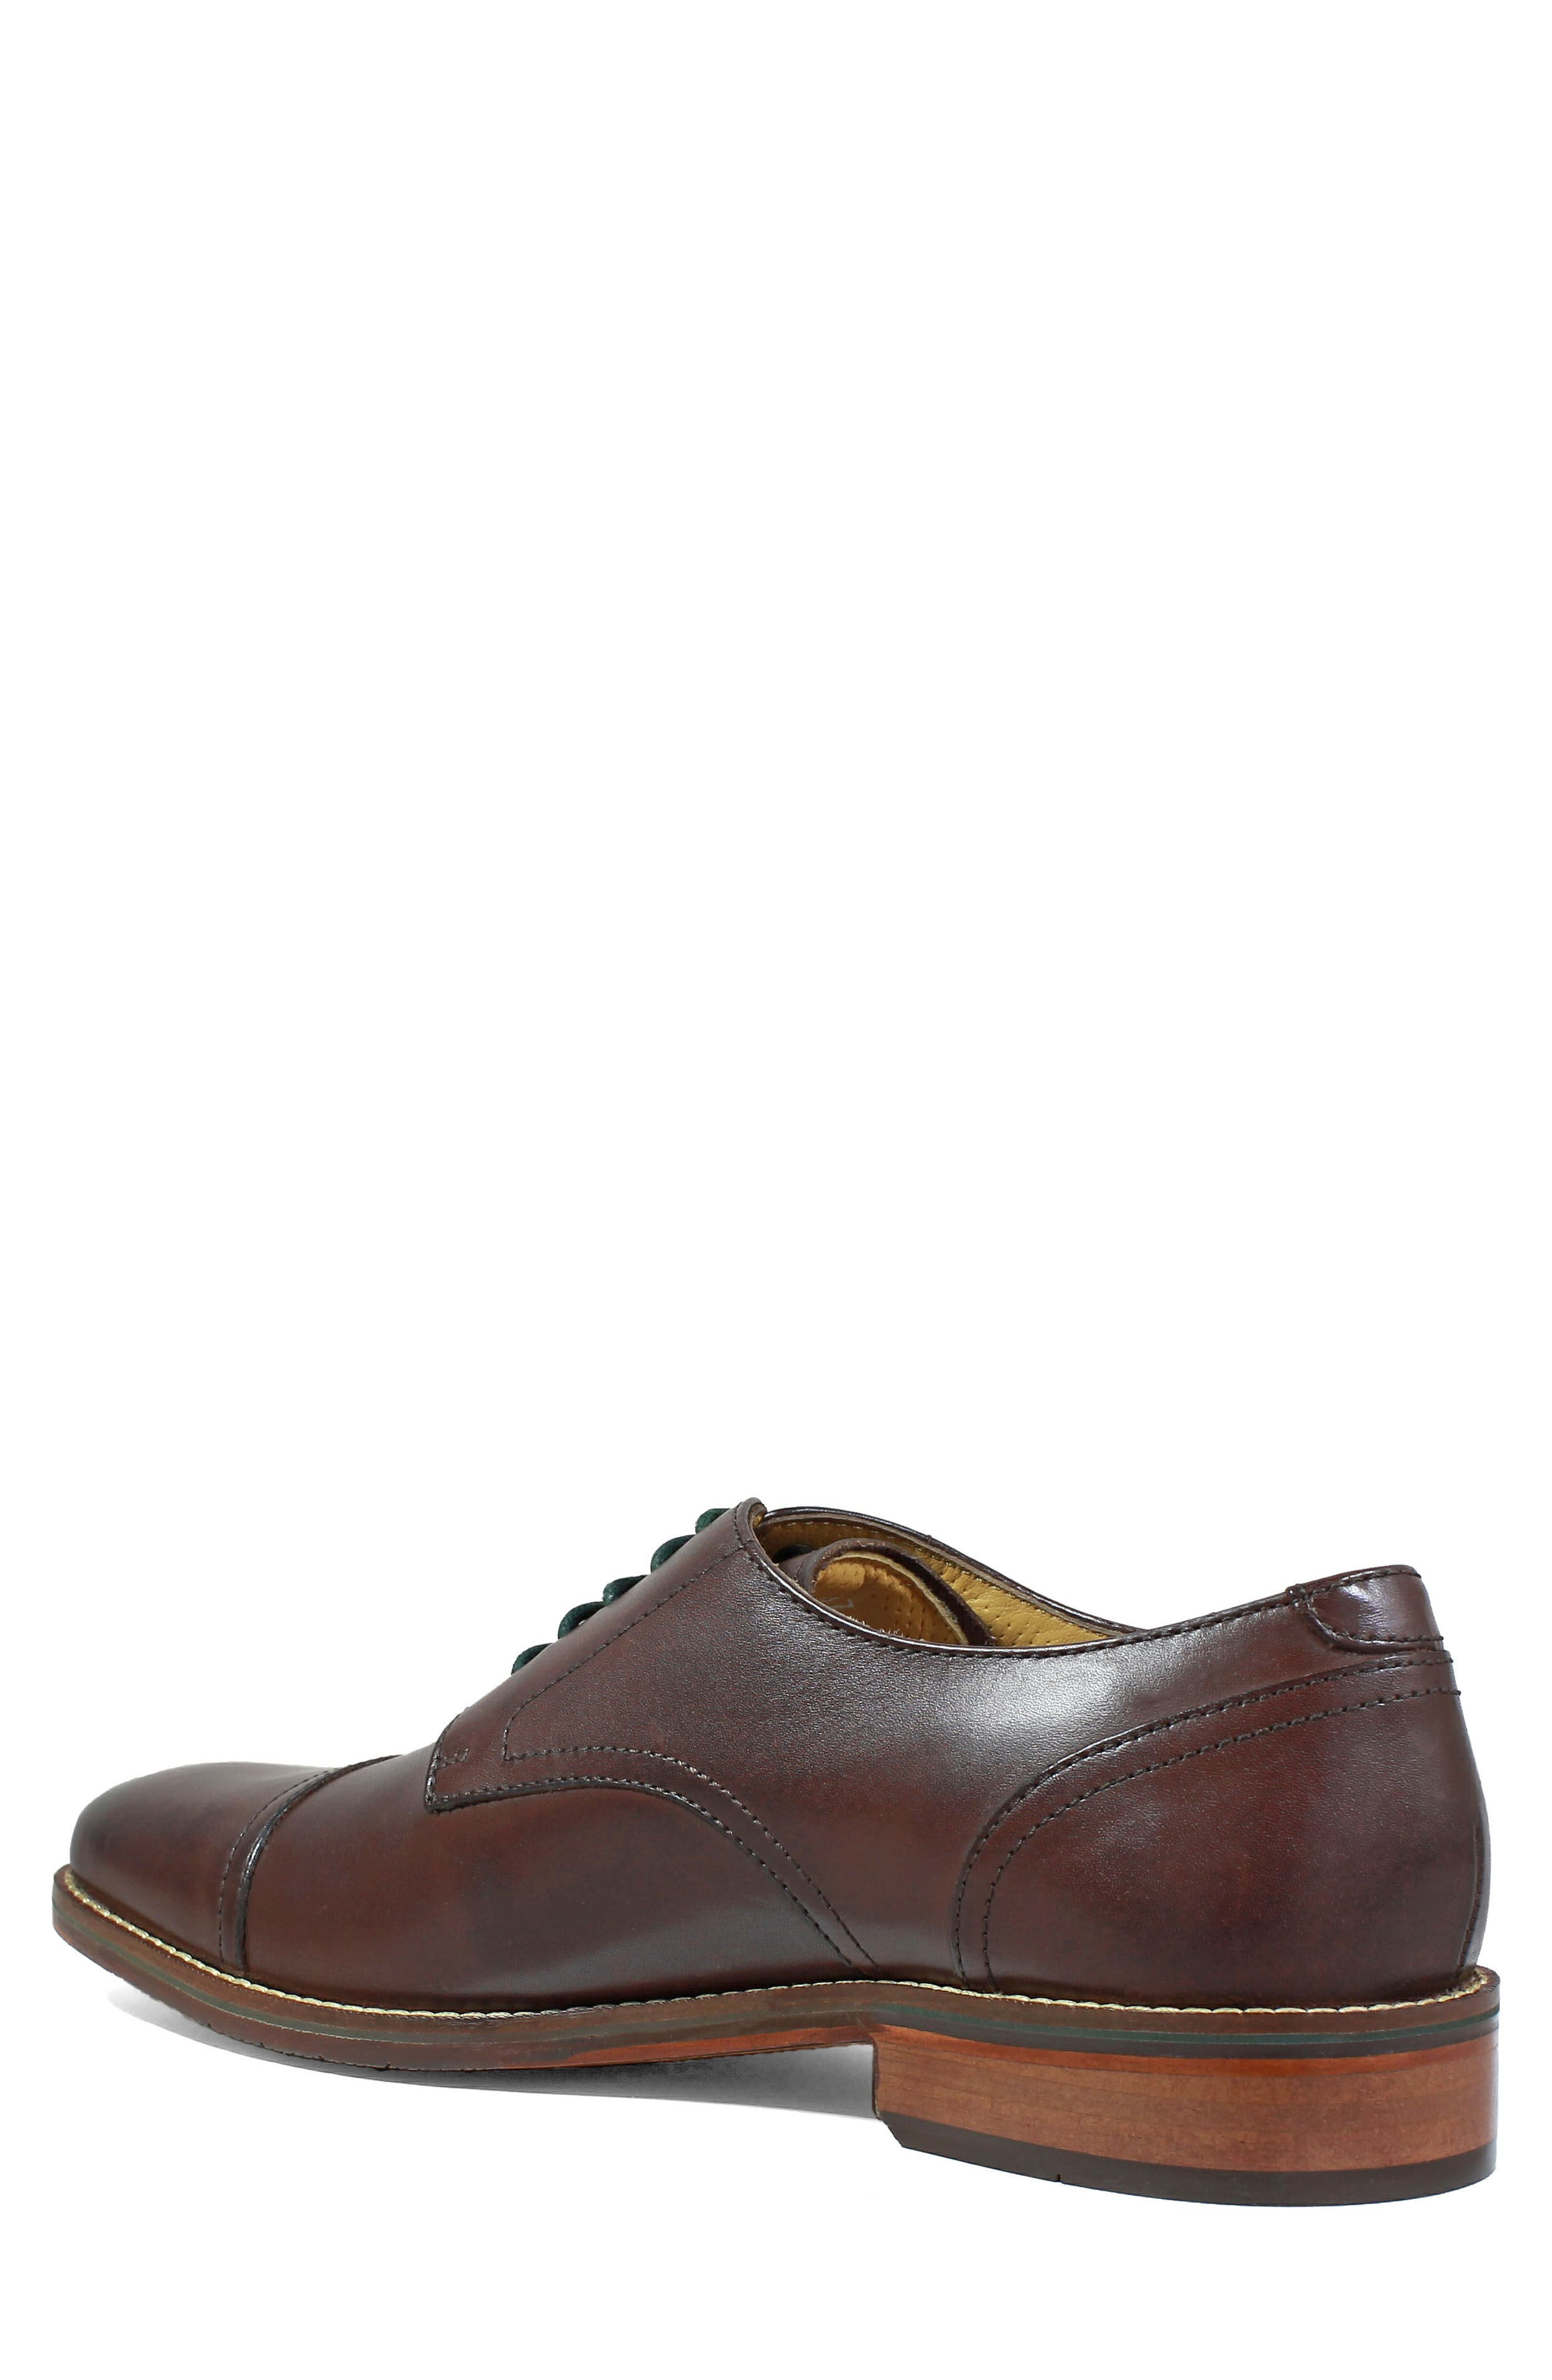 Salerno Cap Toe Derby,                             Alternate thumbnail 2, color,                             Brown Leather